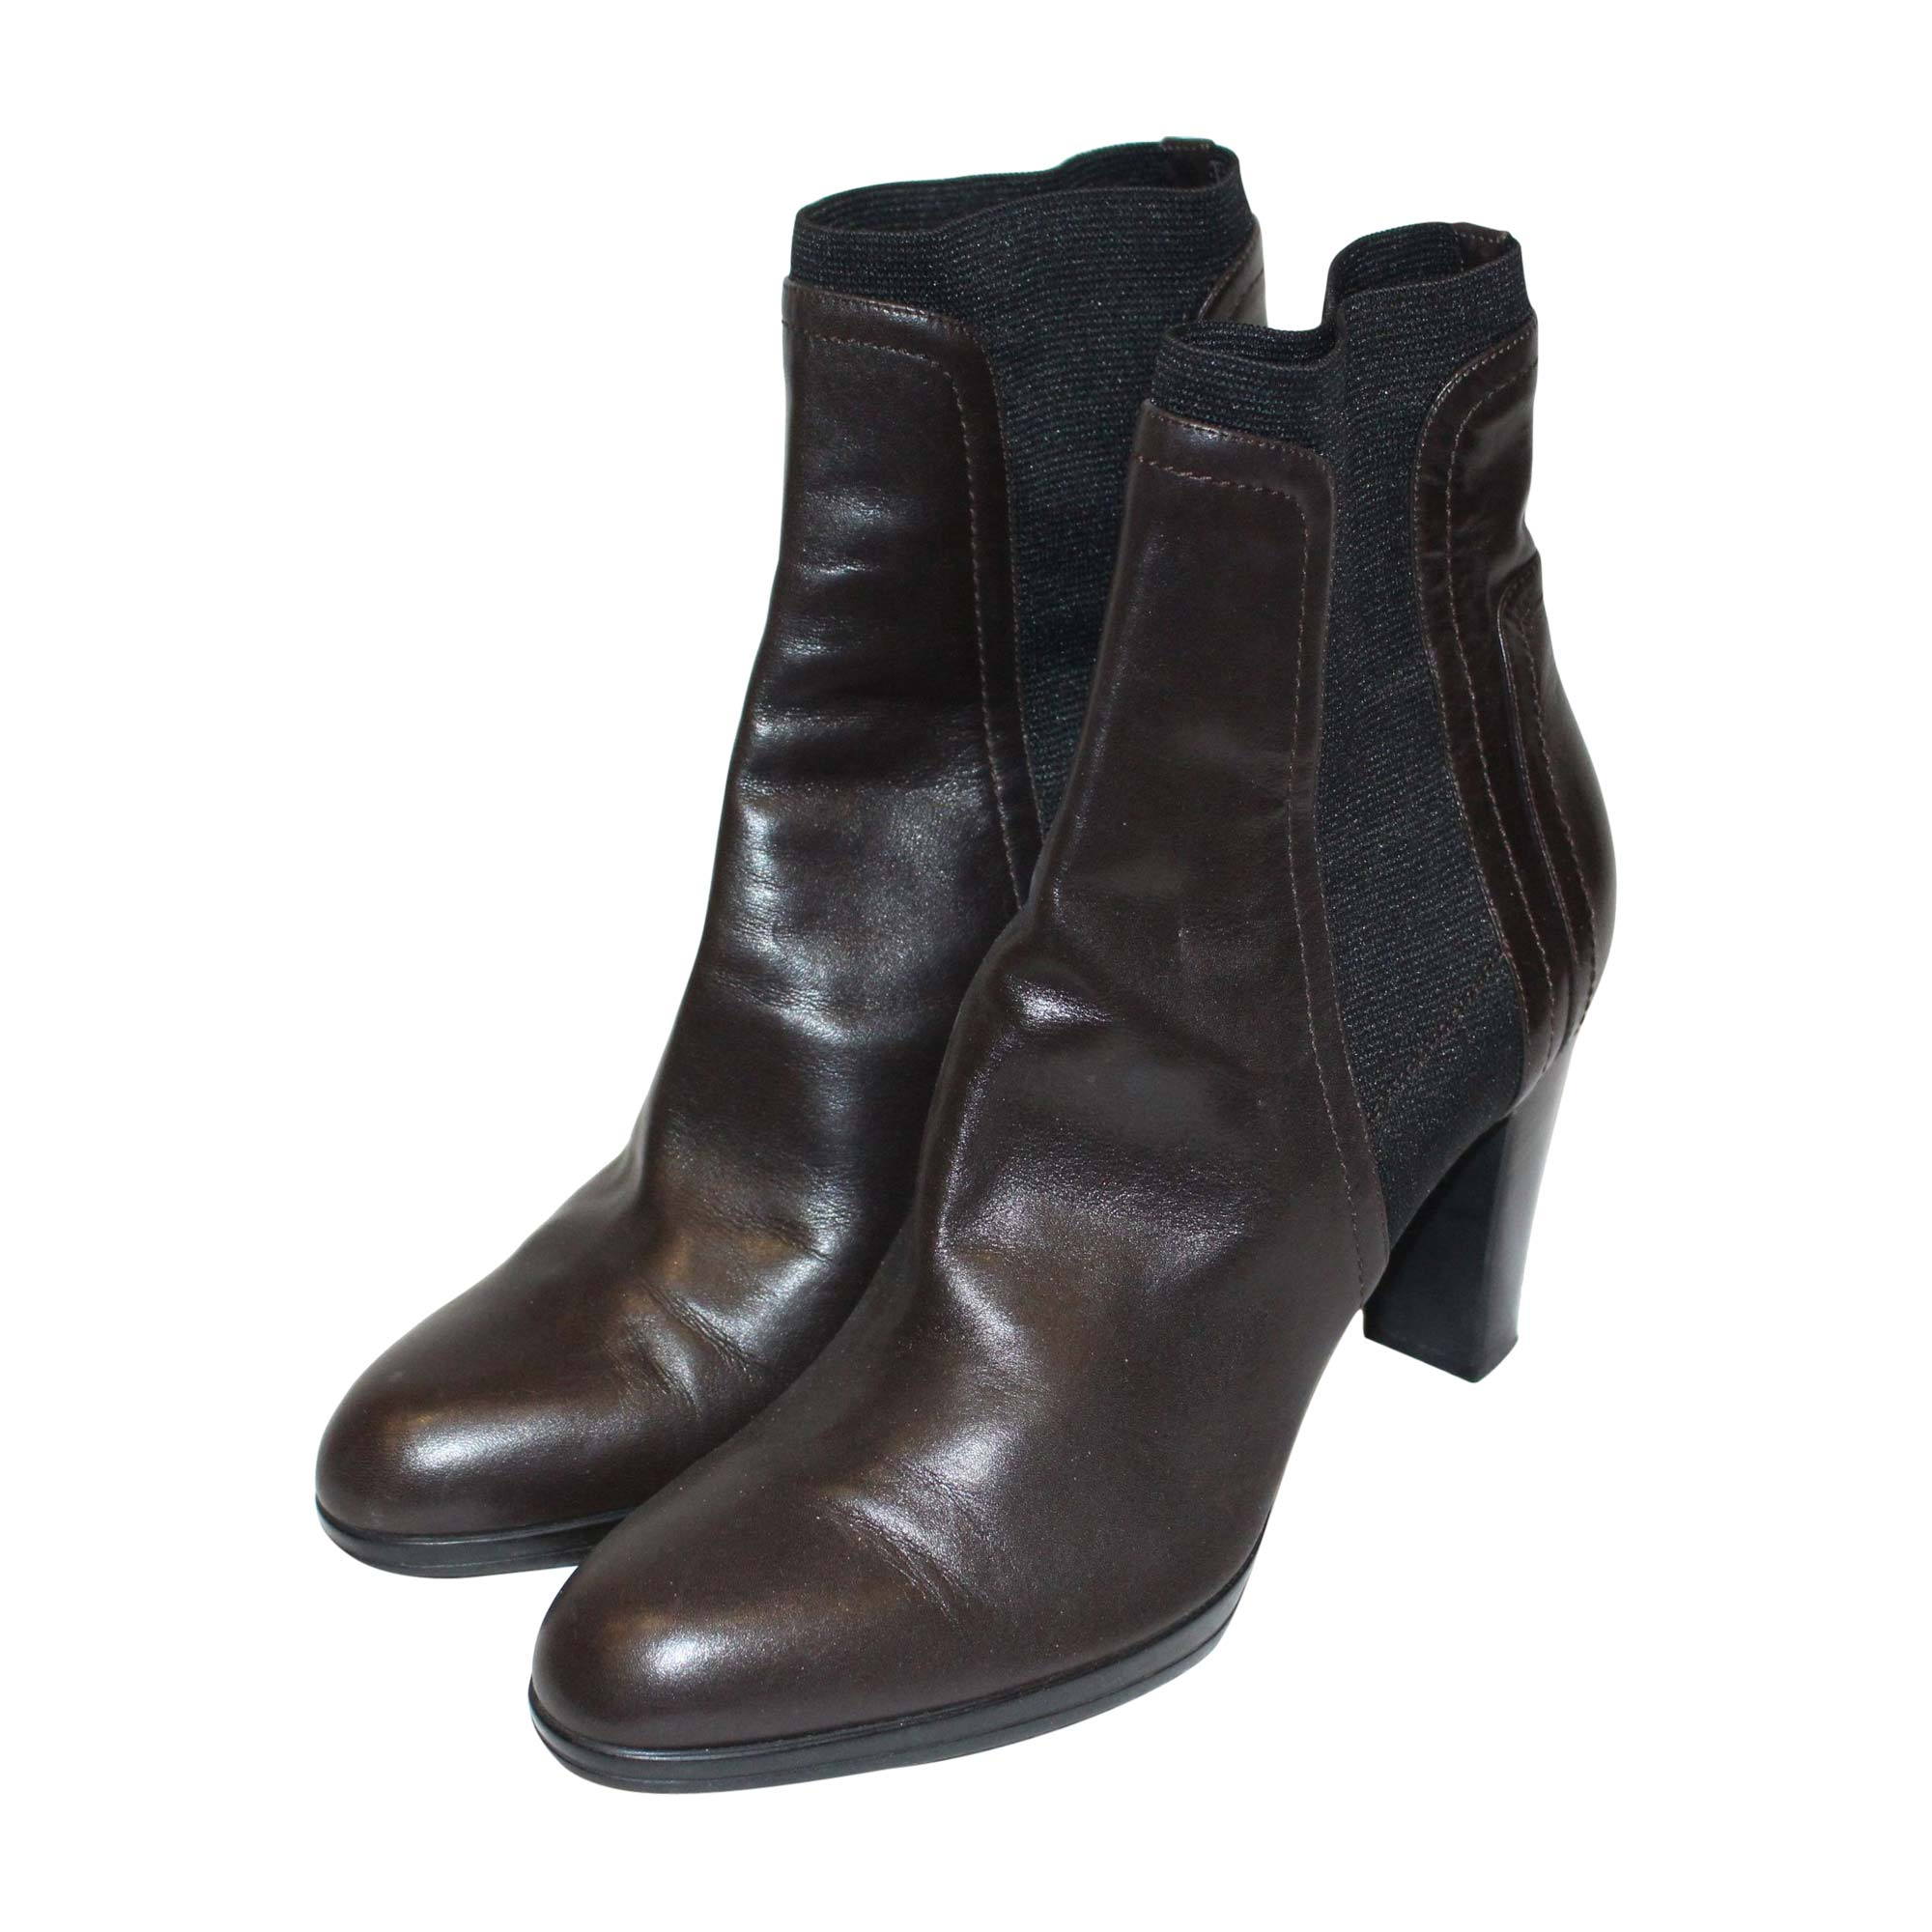 7195ca29b4f1 High Heel Ankle Boots SERGIO ROSSI Brown